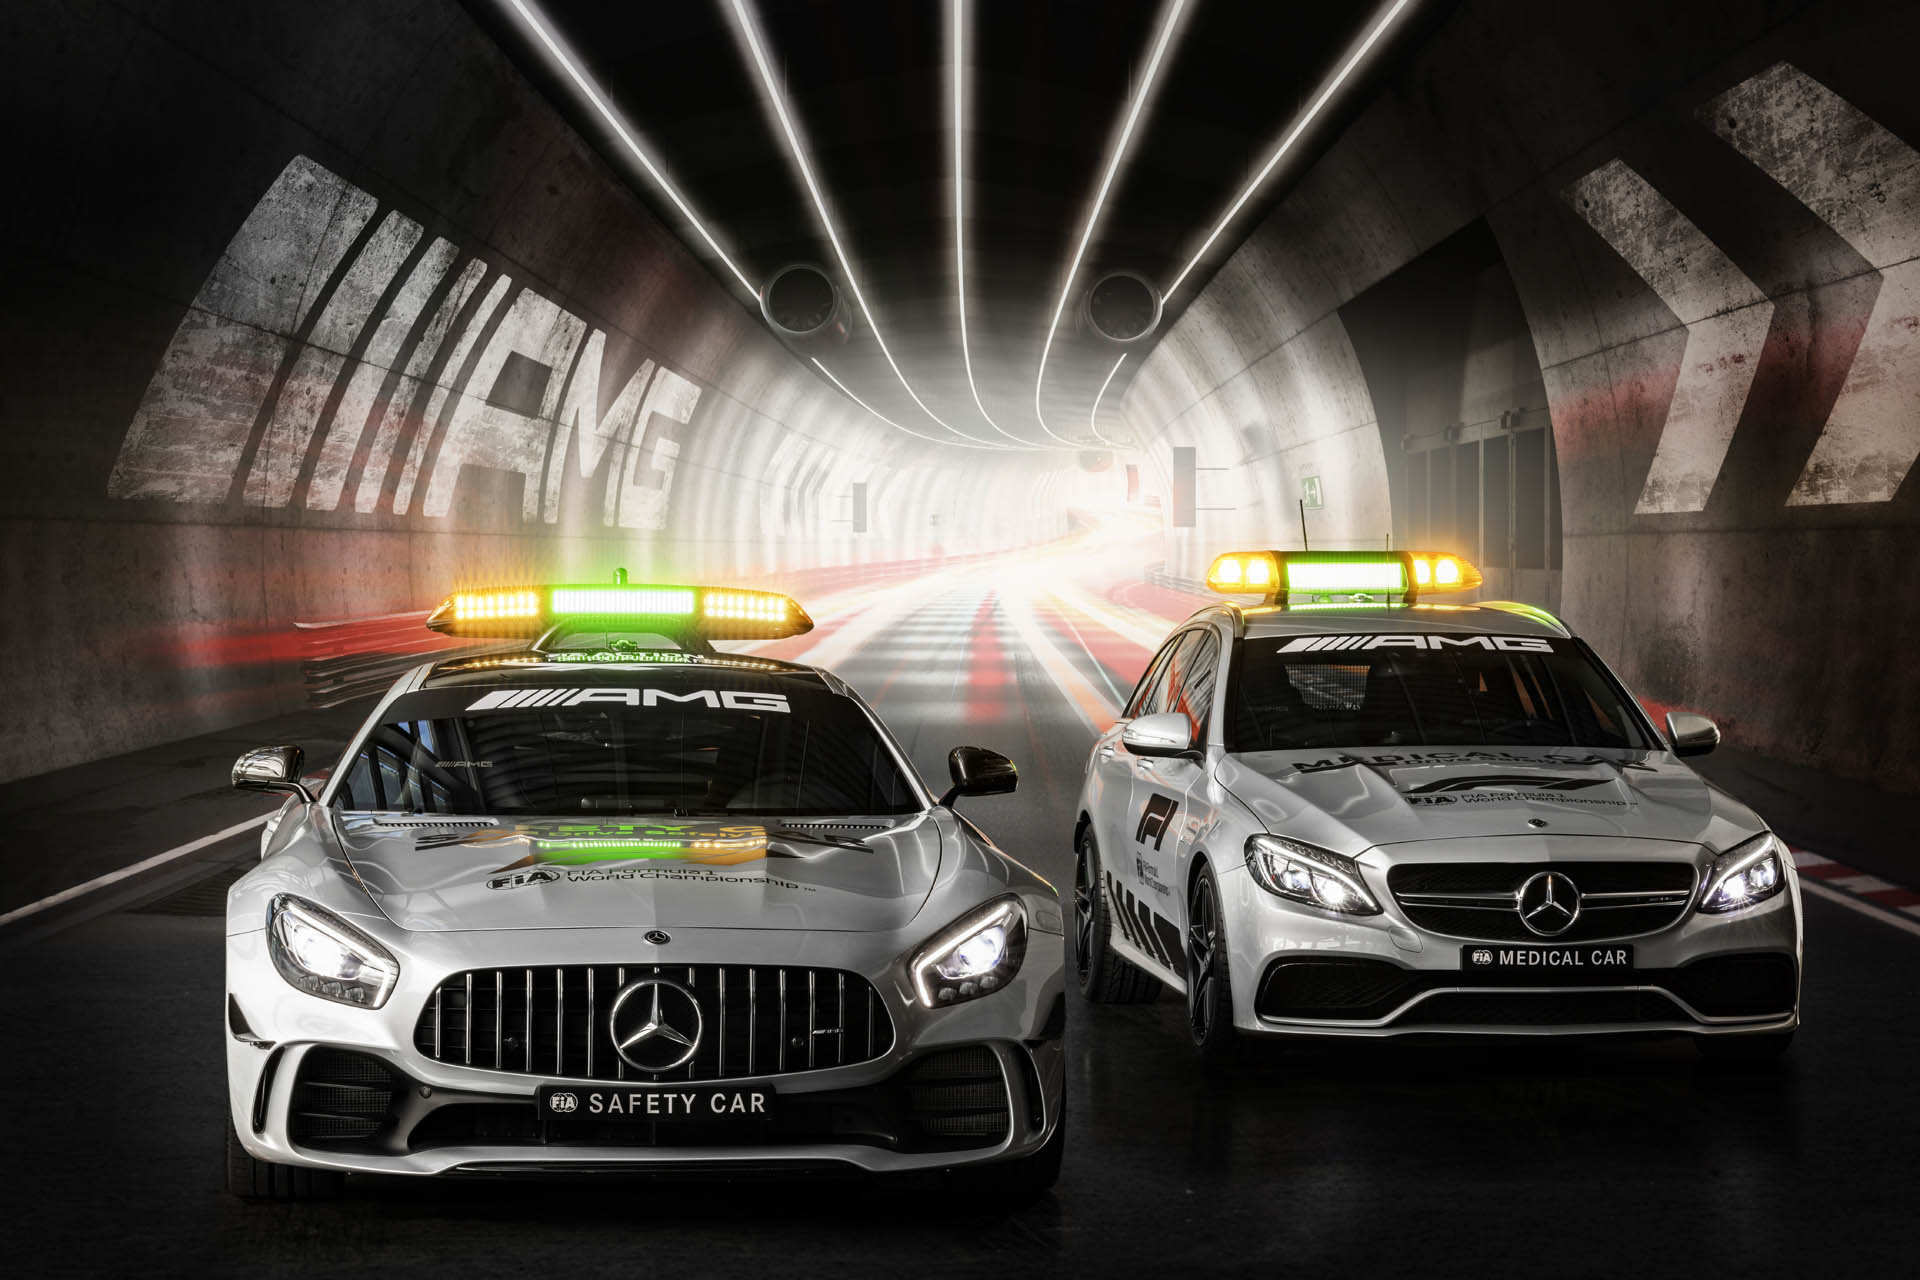 mercedes-amg-gt-r-f1-safety-car-08.jpg